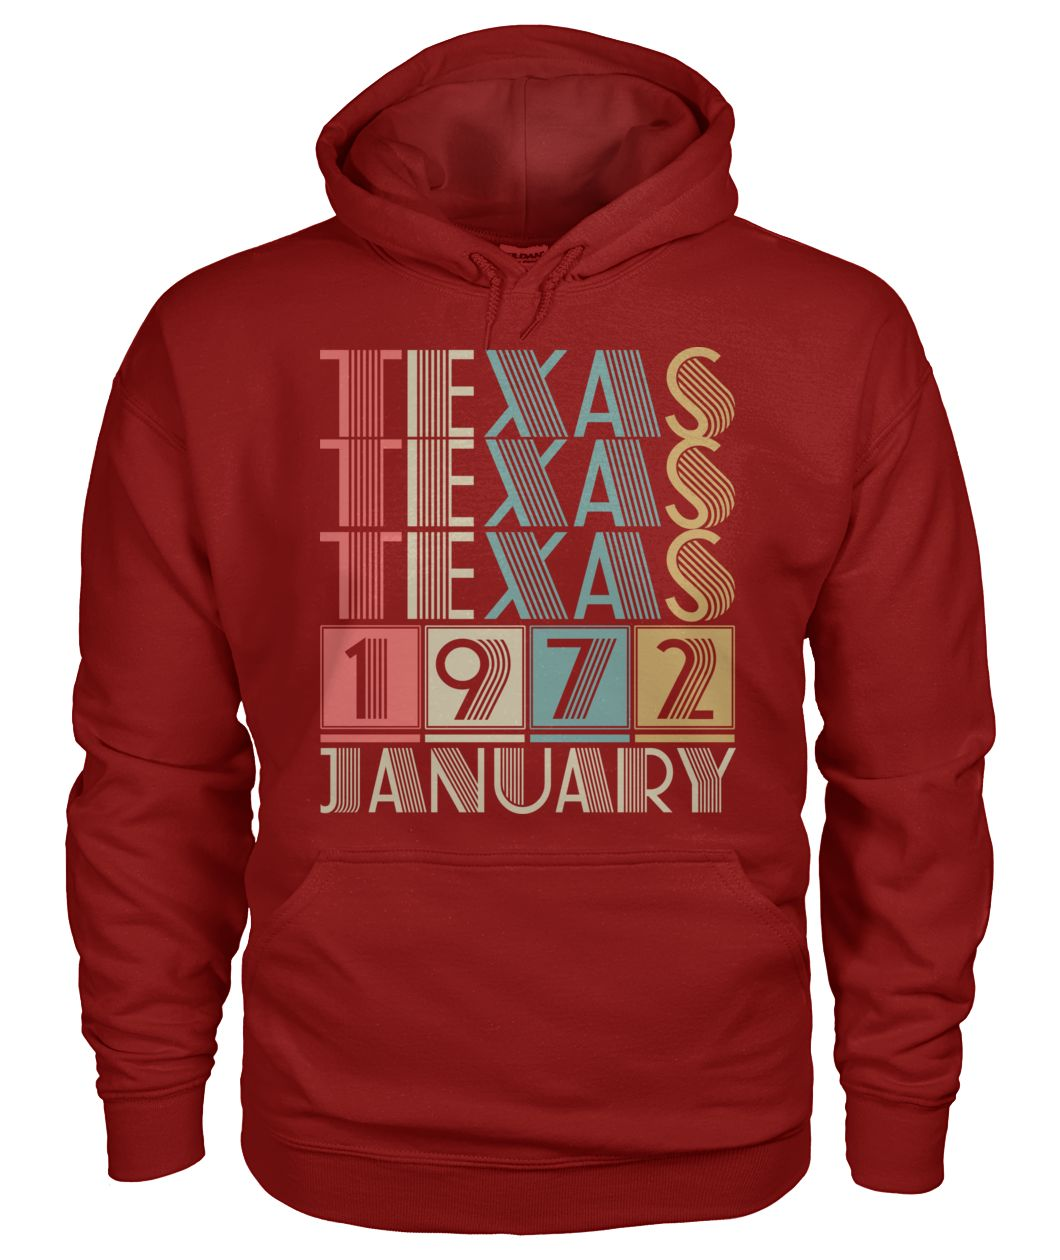 Born in Texas in January 1972 t shirt-Short Sleeves - TEEHOT.COM